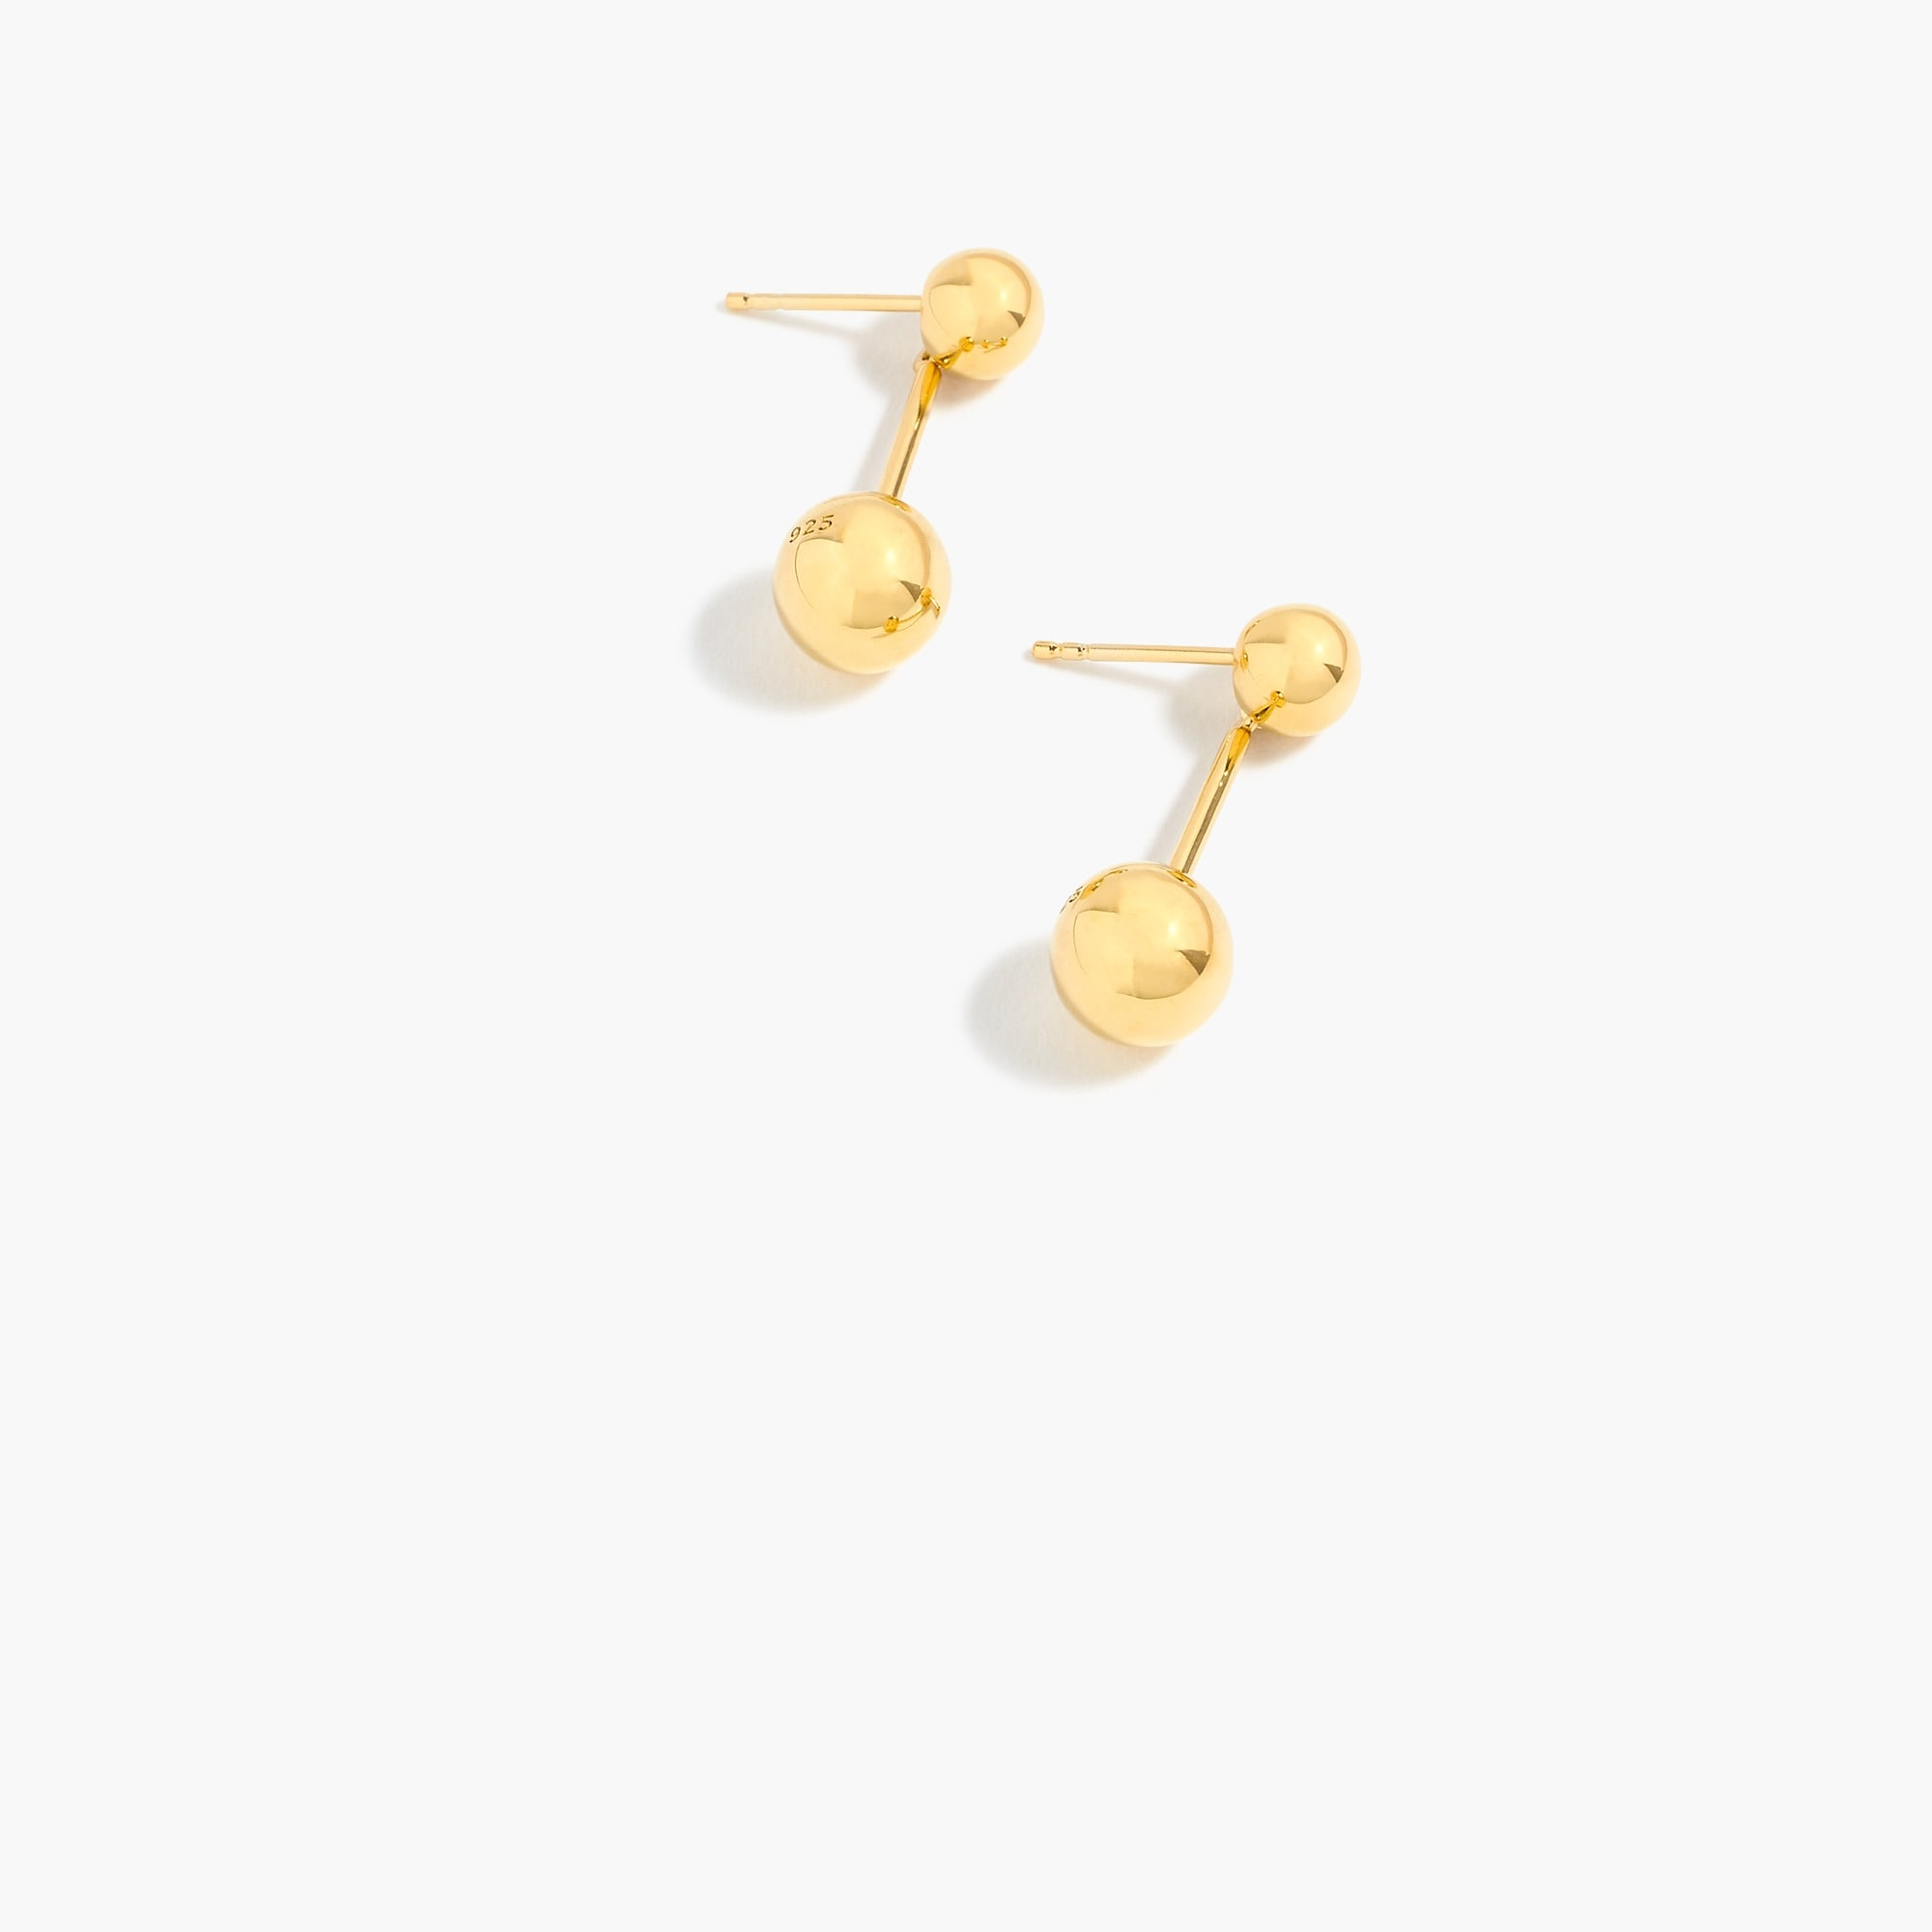 Demi-fine 14k gold-plated double-orb earrings women jewelry c